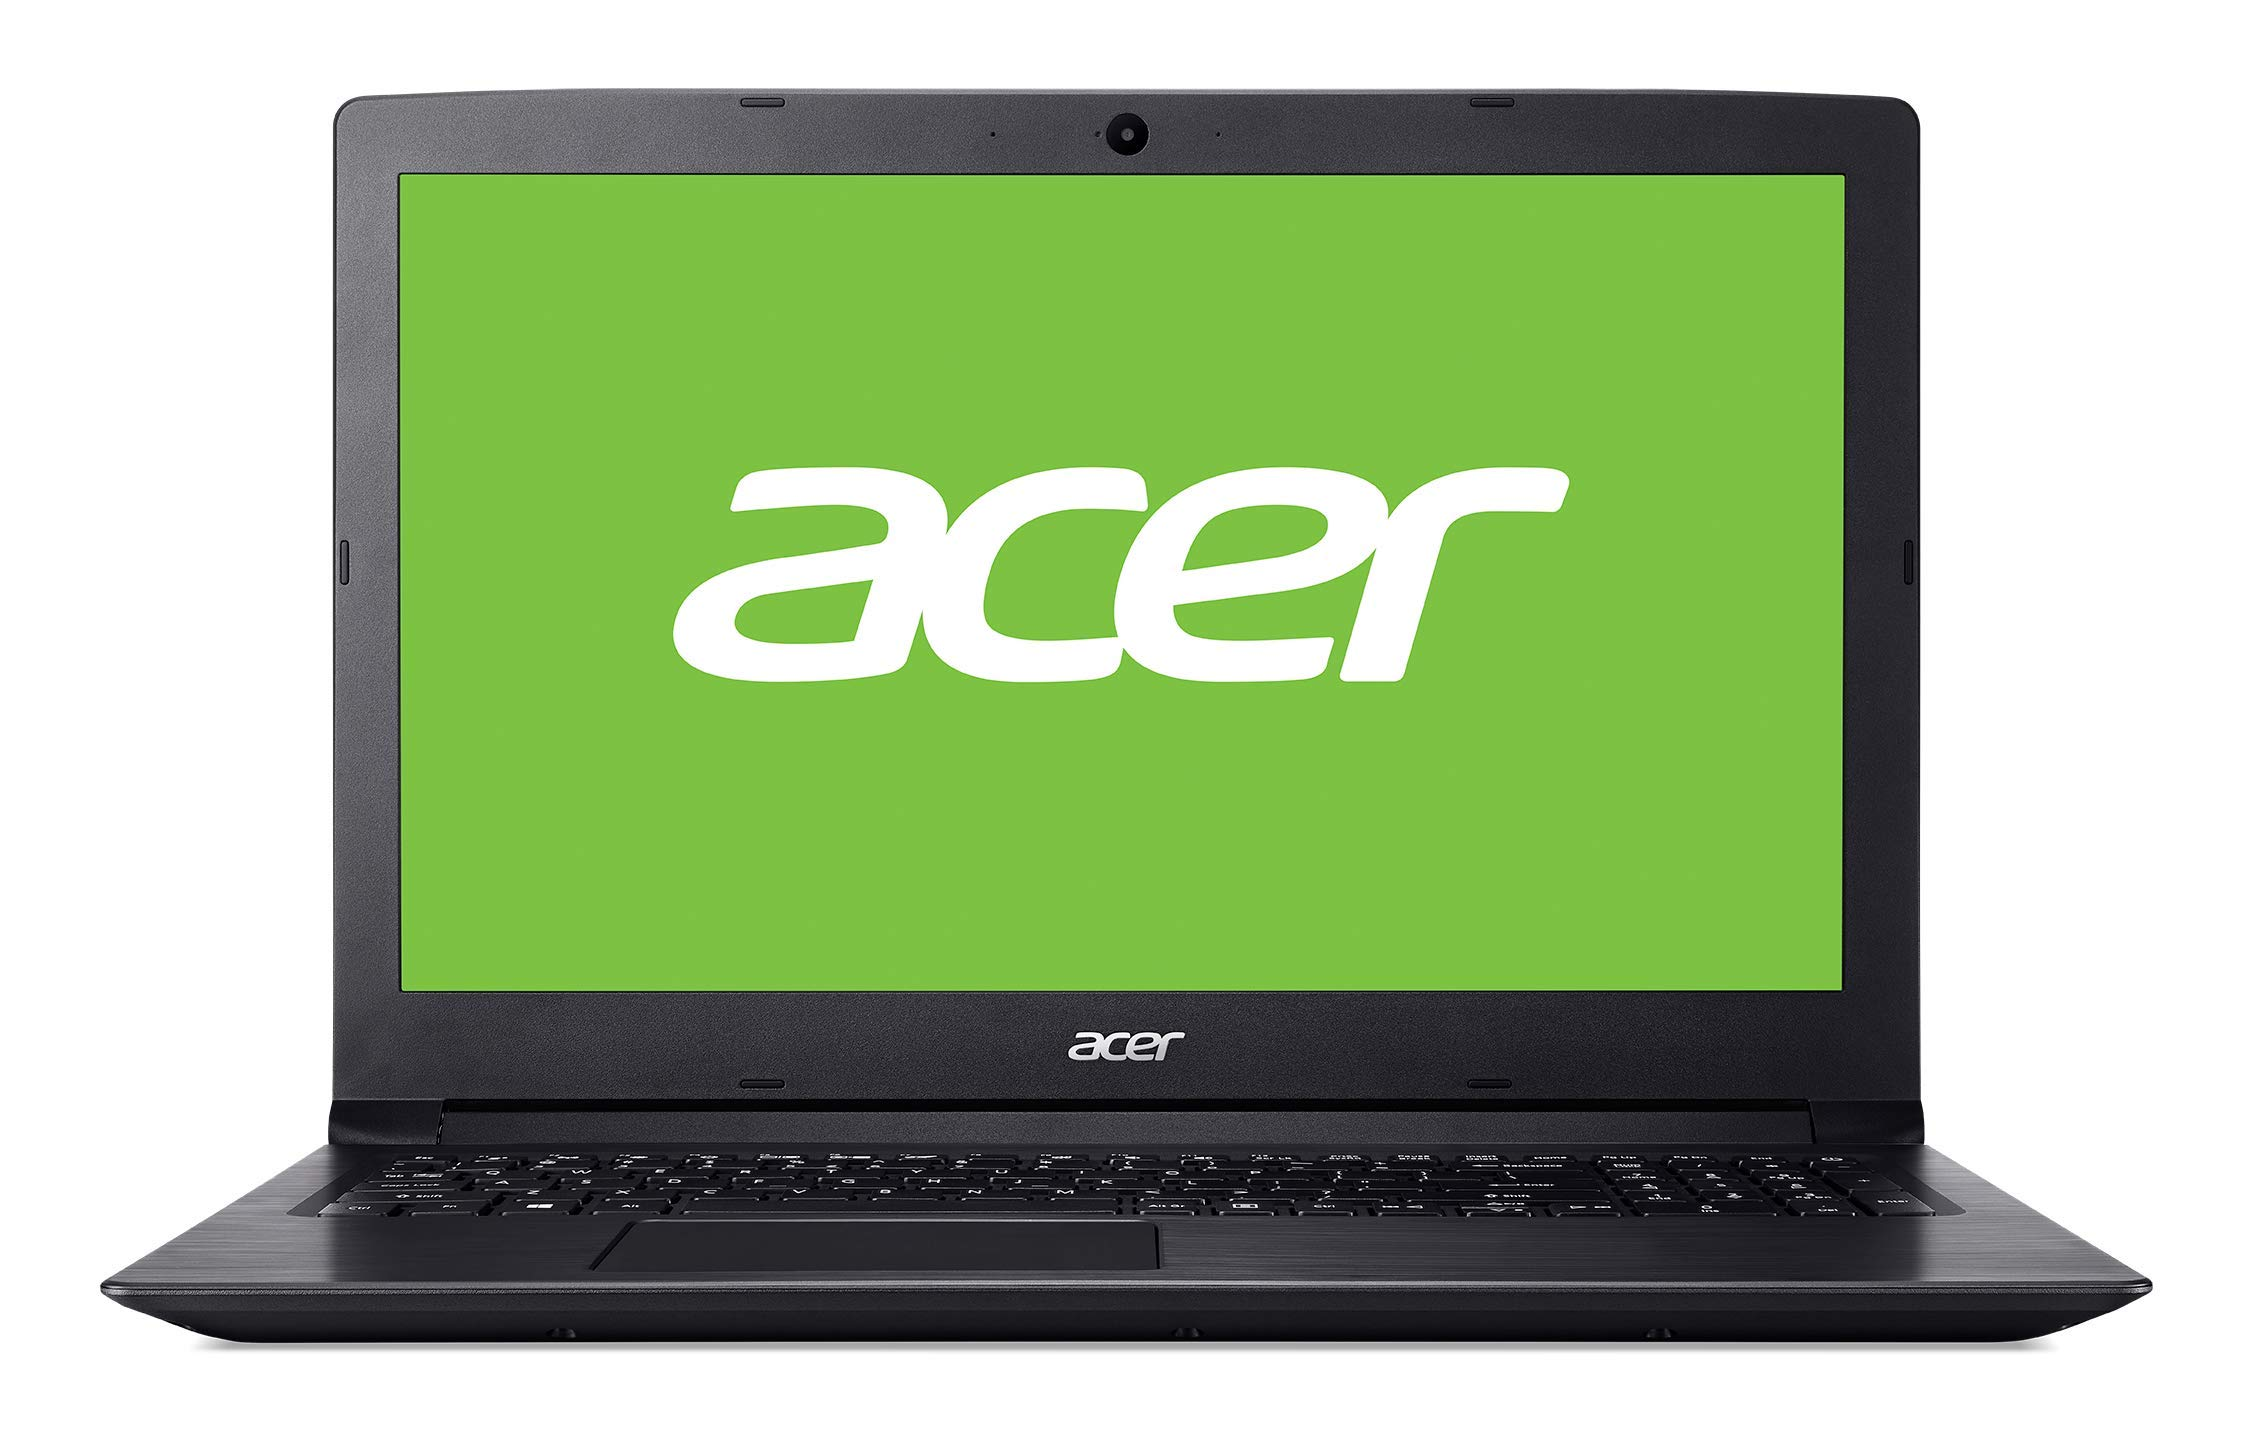 Acer Aspire 3 | A315-53 – Ordenador portátil de 15.6″ HD (Intel Core i3-7020U, 4 GB RAM, 128GB SSD, UMA, Windows 10 Home) Negro – Teclado QWERTY Español